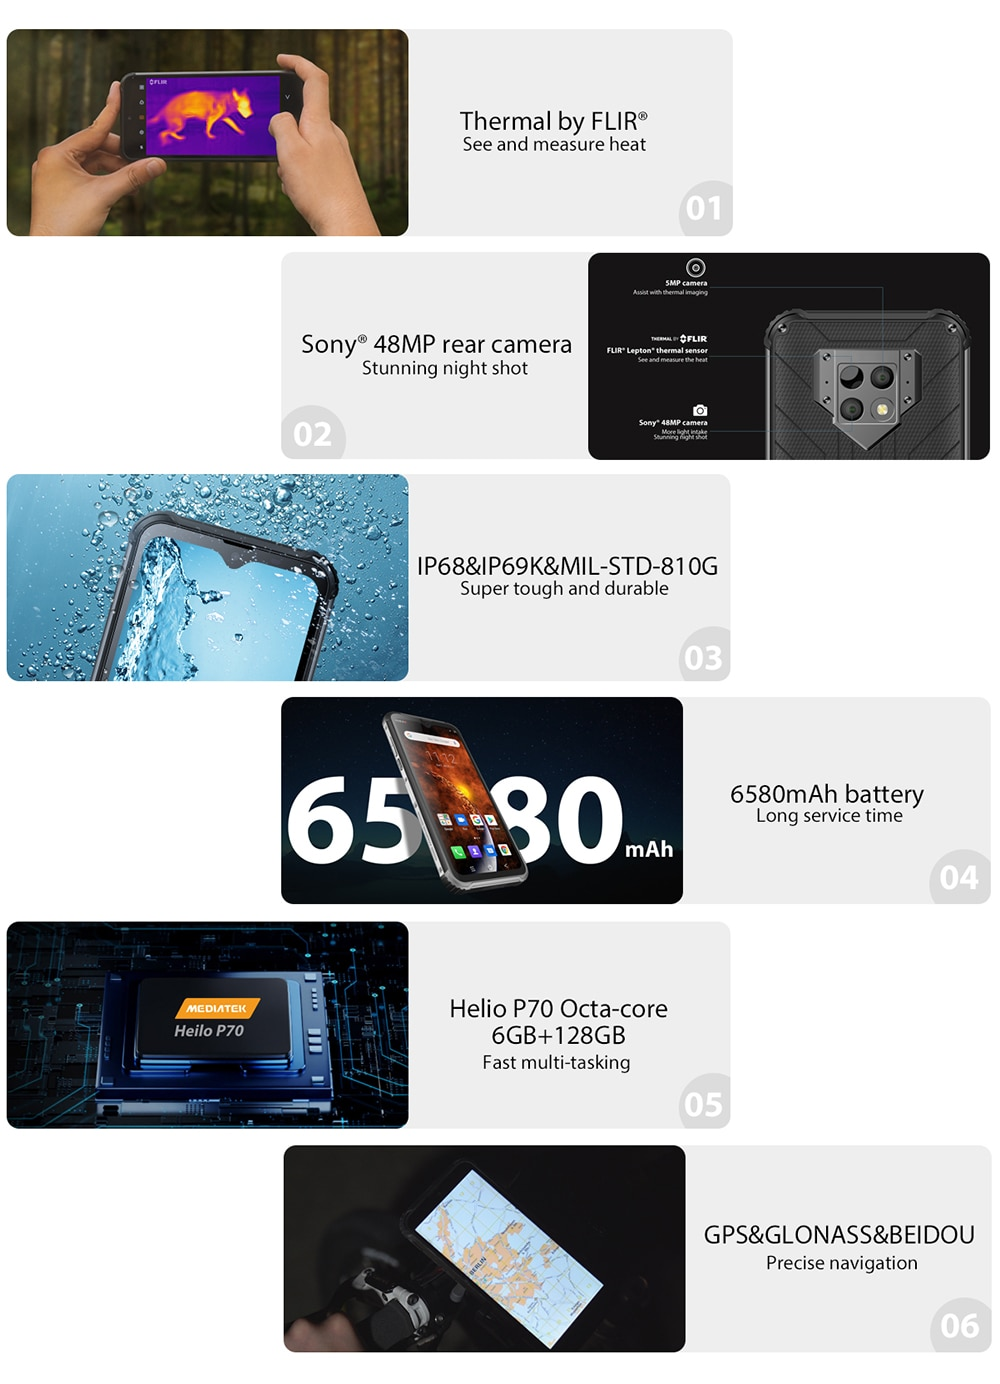 Hcd77531a32ed4fed99a181c9dade3a8d8 - Blackview BV9800 Pro Thermal Camera Mobile Phone Helio P70 Android 9.0 6GB 128GB IP68 Waterproof 6580mAh Rugged Smartphone